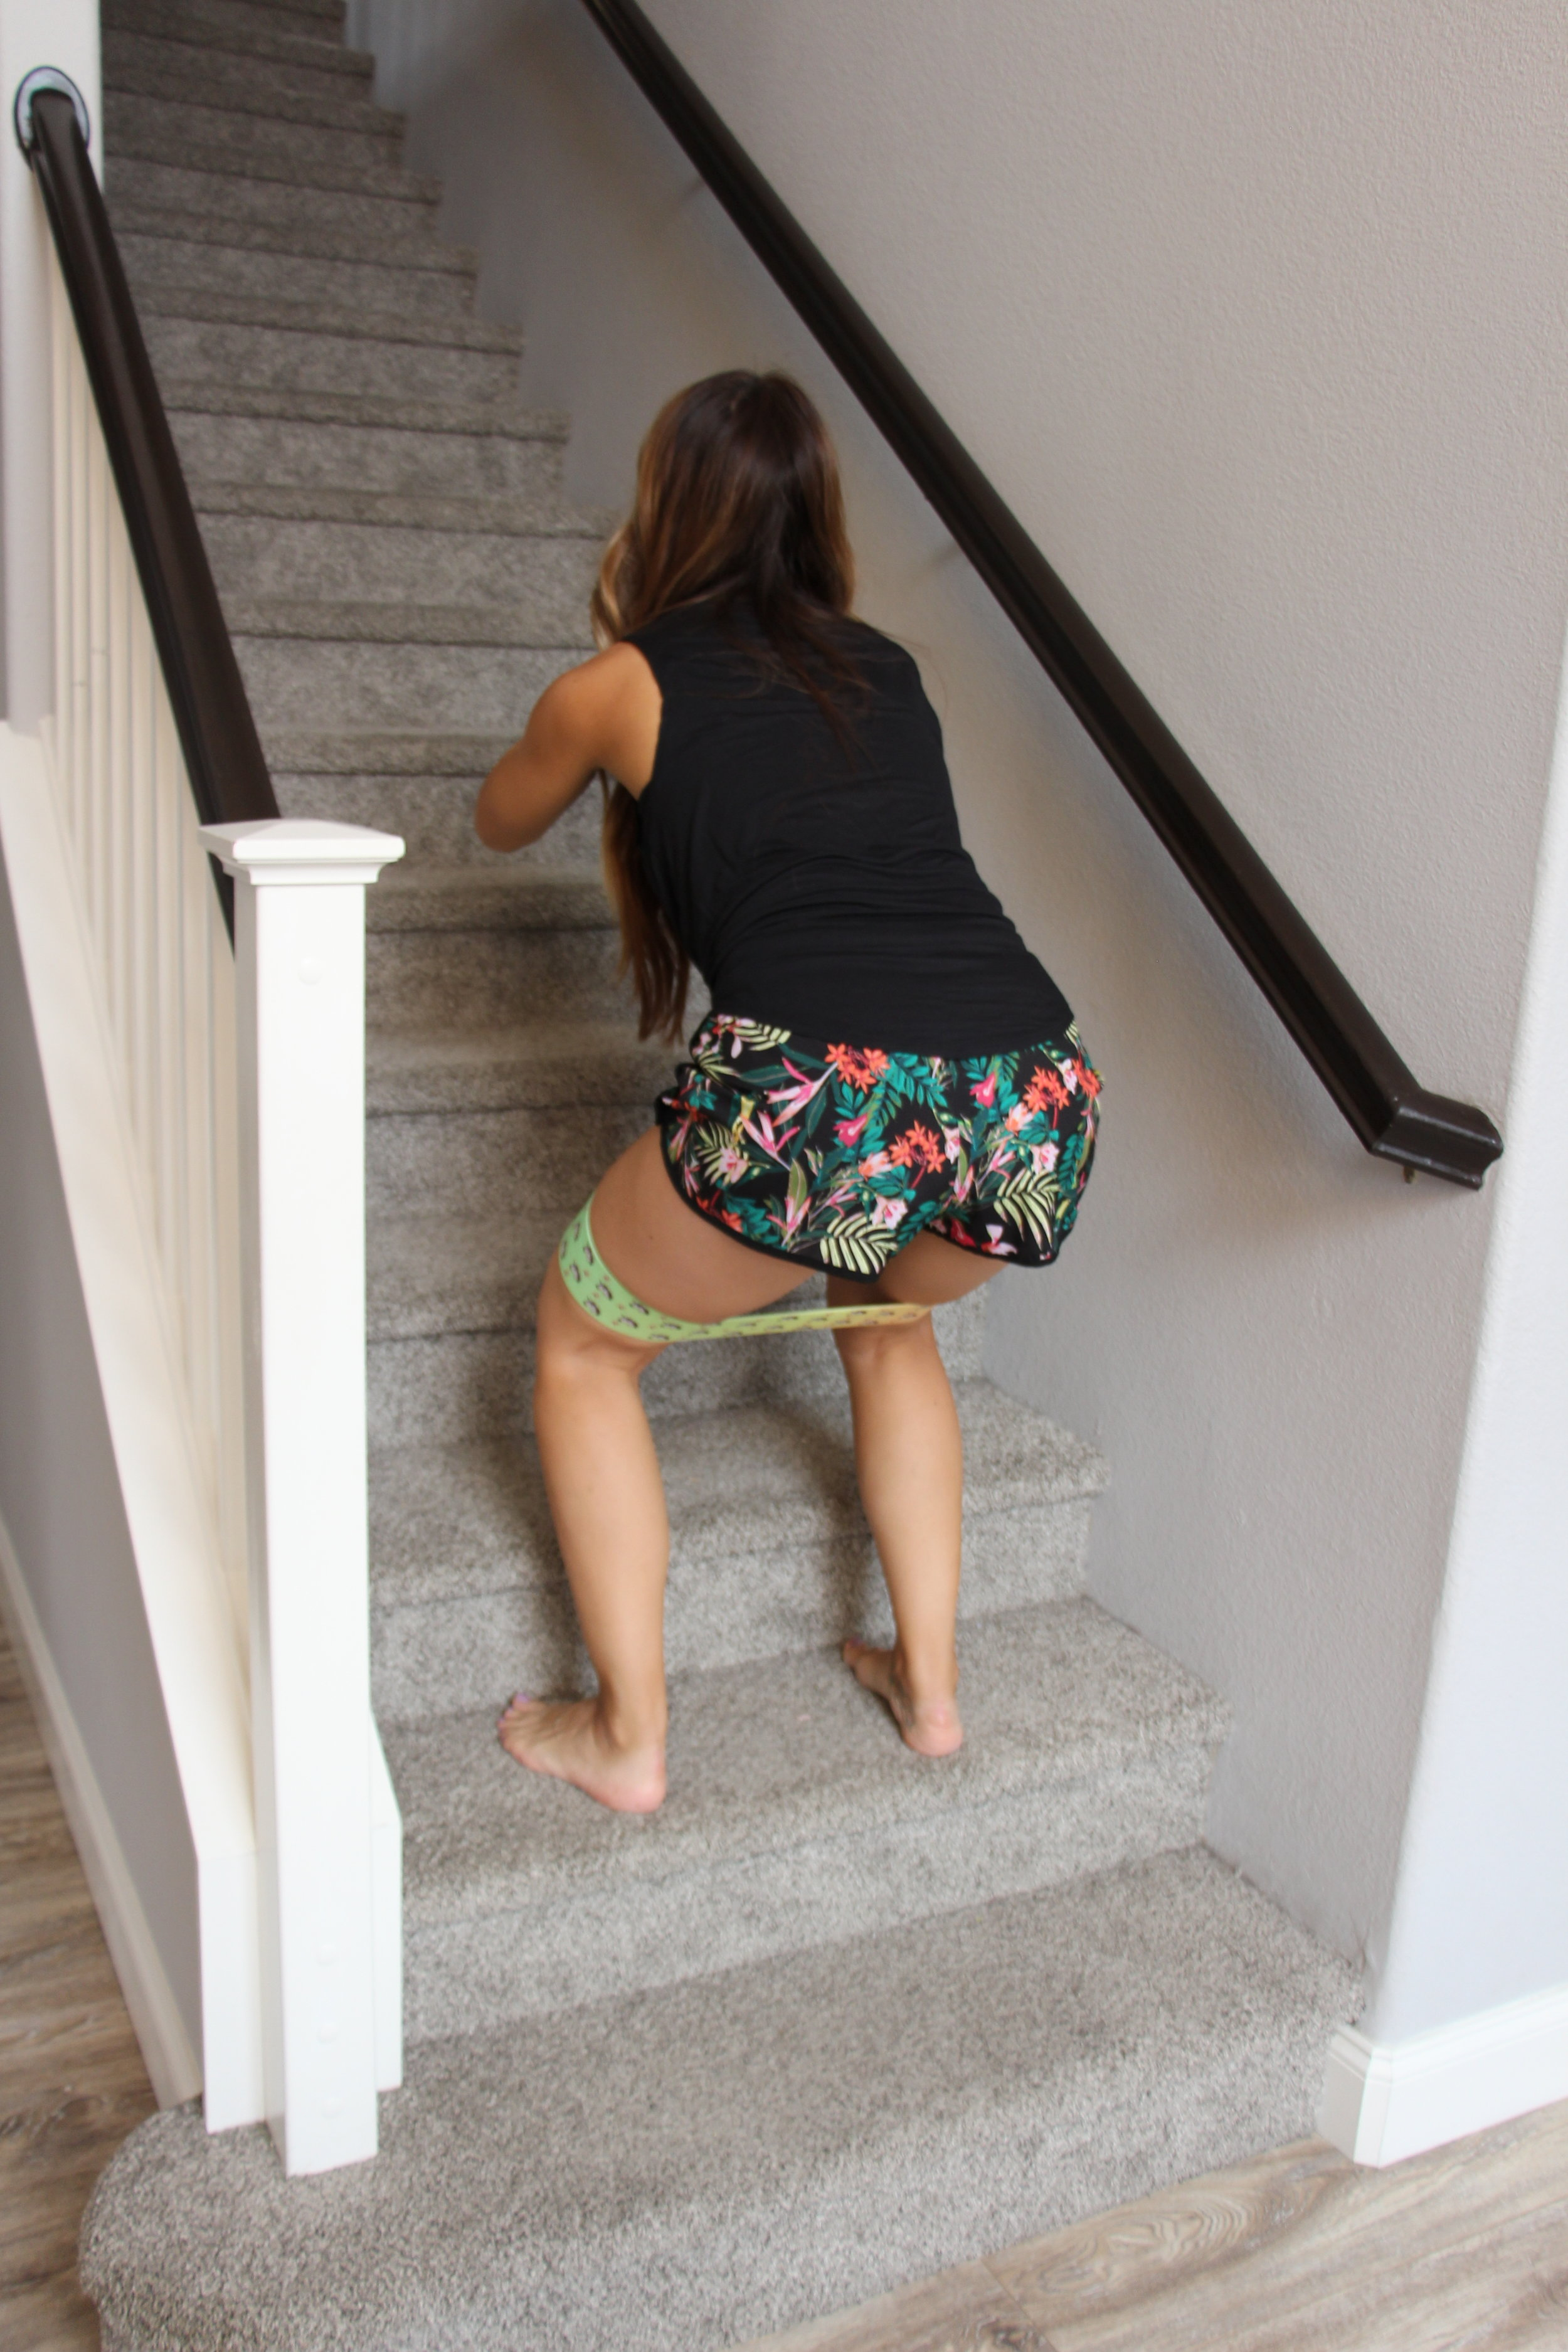 - Using a Medium band you can do a stationary squat or you can squat up the stairs.